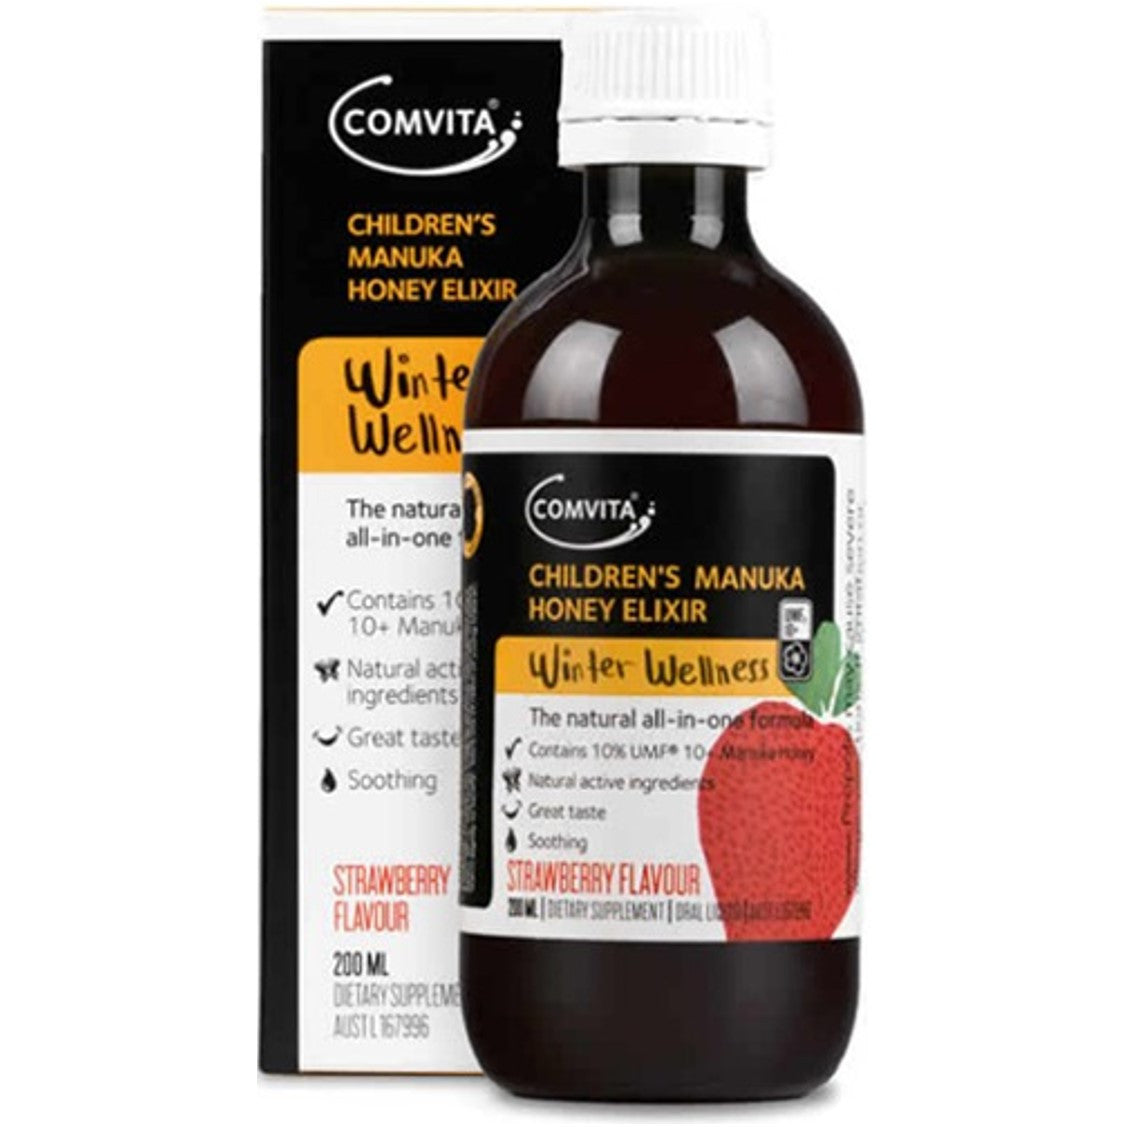 Comvita Children's Manuka Honey Elixir - Strawberry,200ml